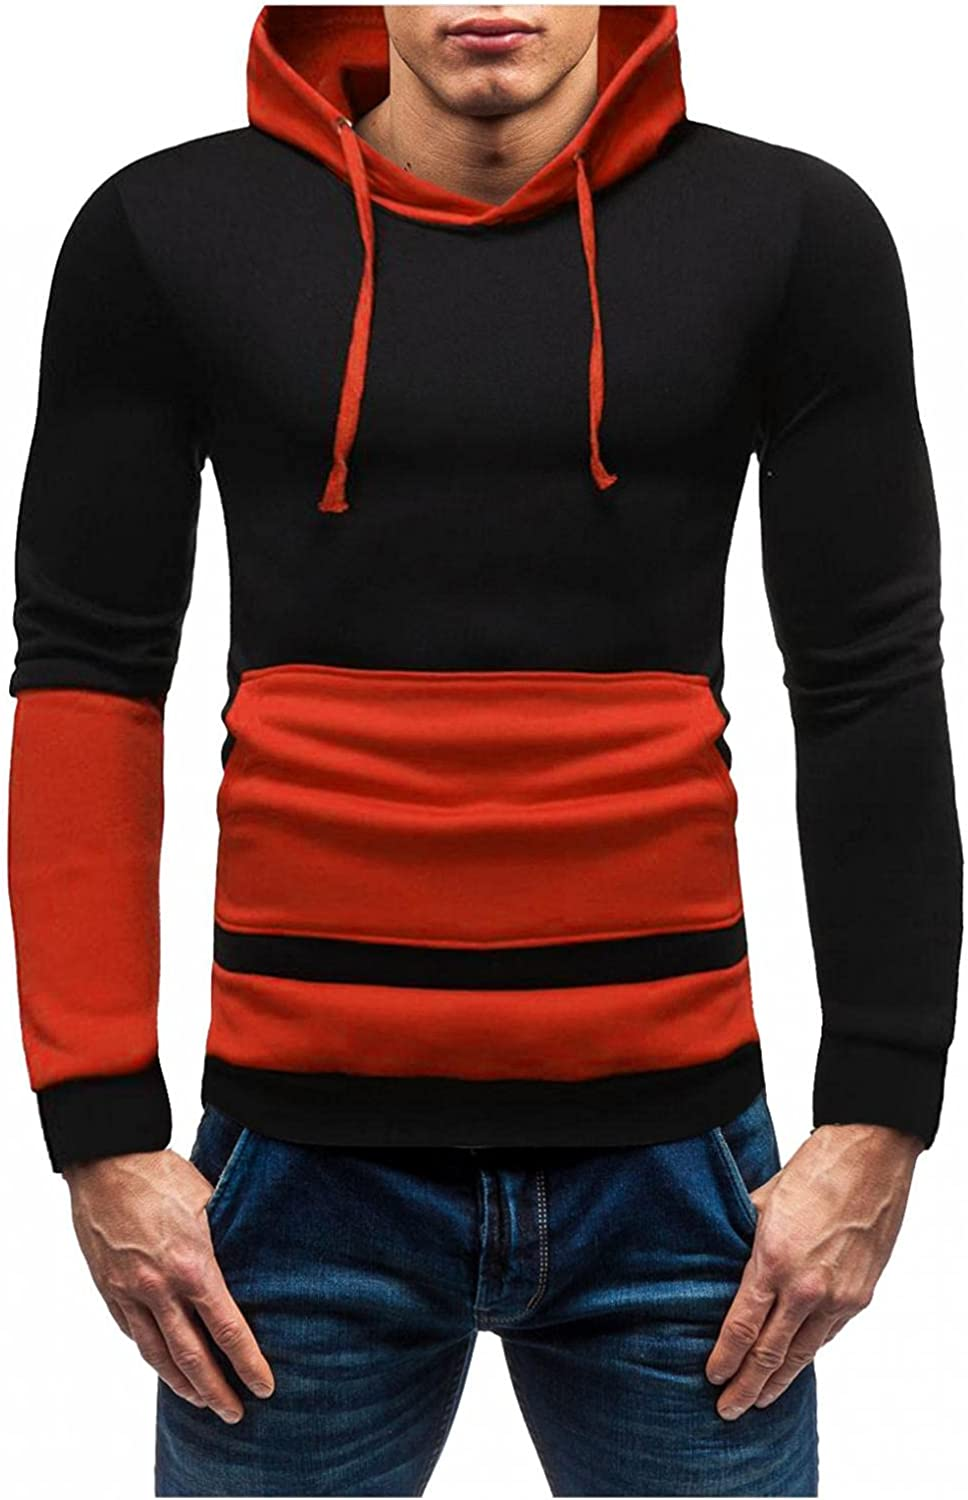 LEIYAN Mens Muscle Hoodie Pullover Casual Long Sleeve Slim Fit Colorblocking Gym Workout Sweatshirt Pullover